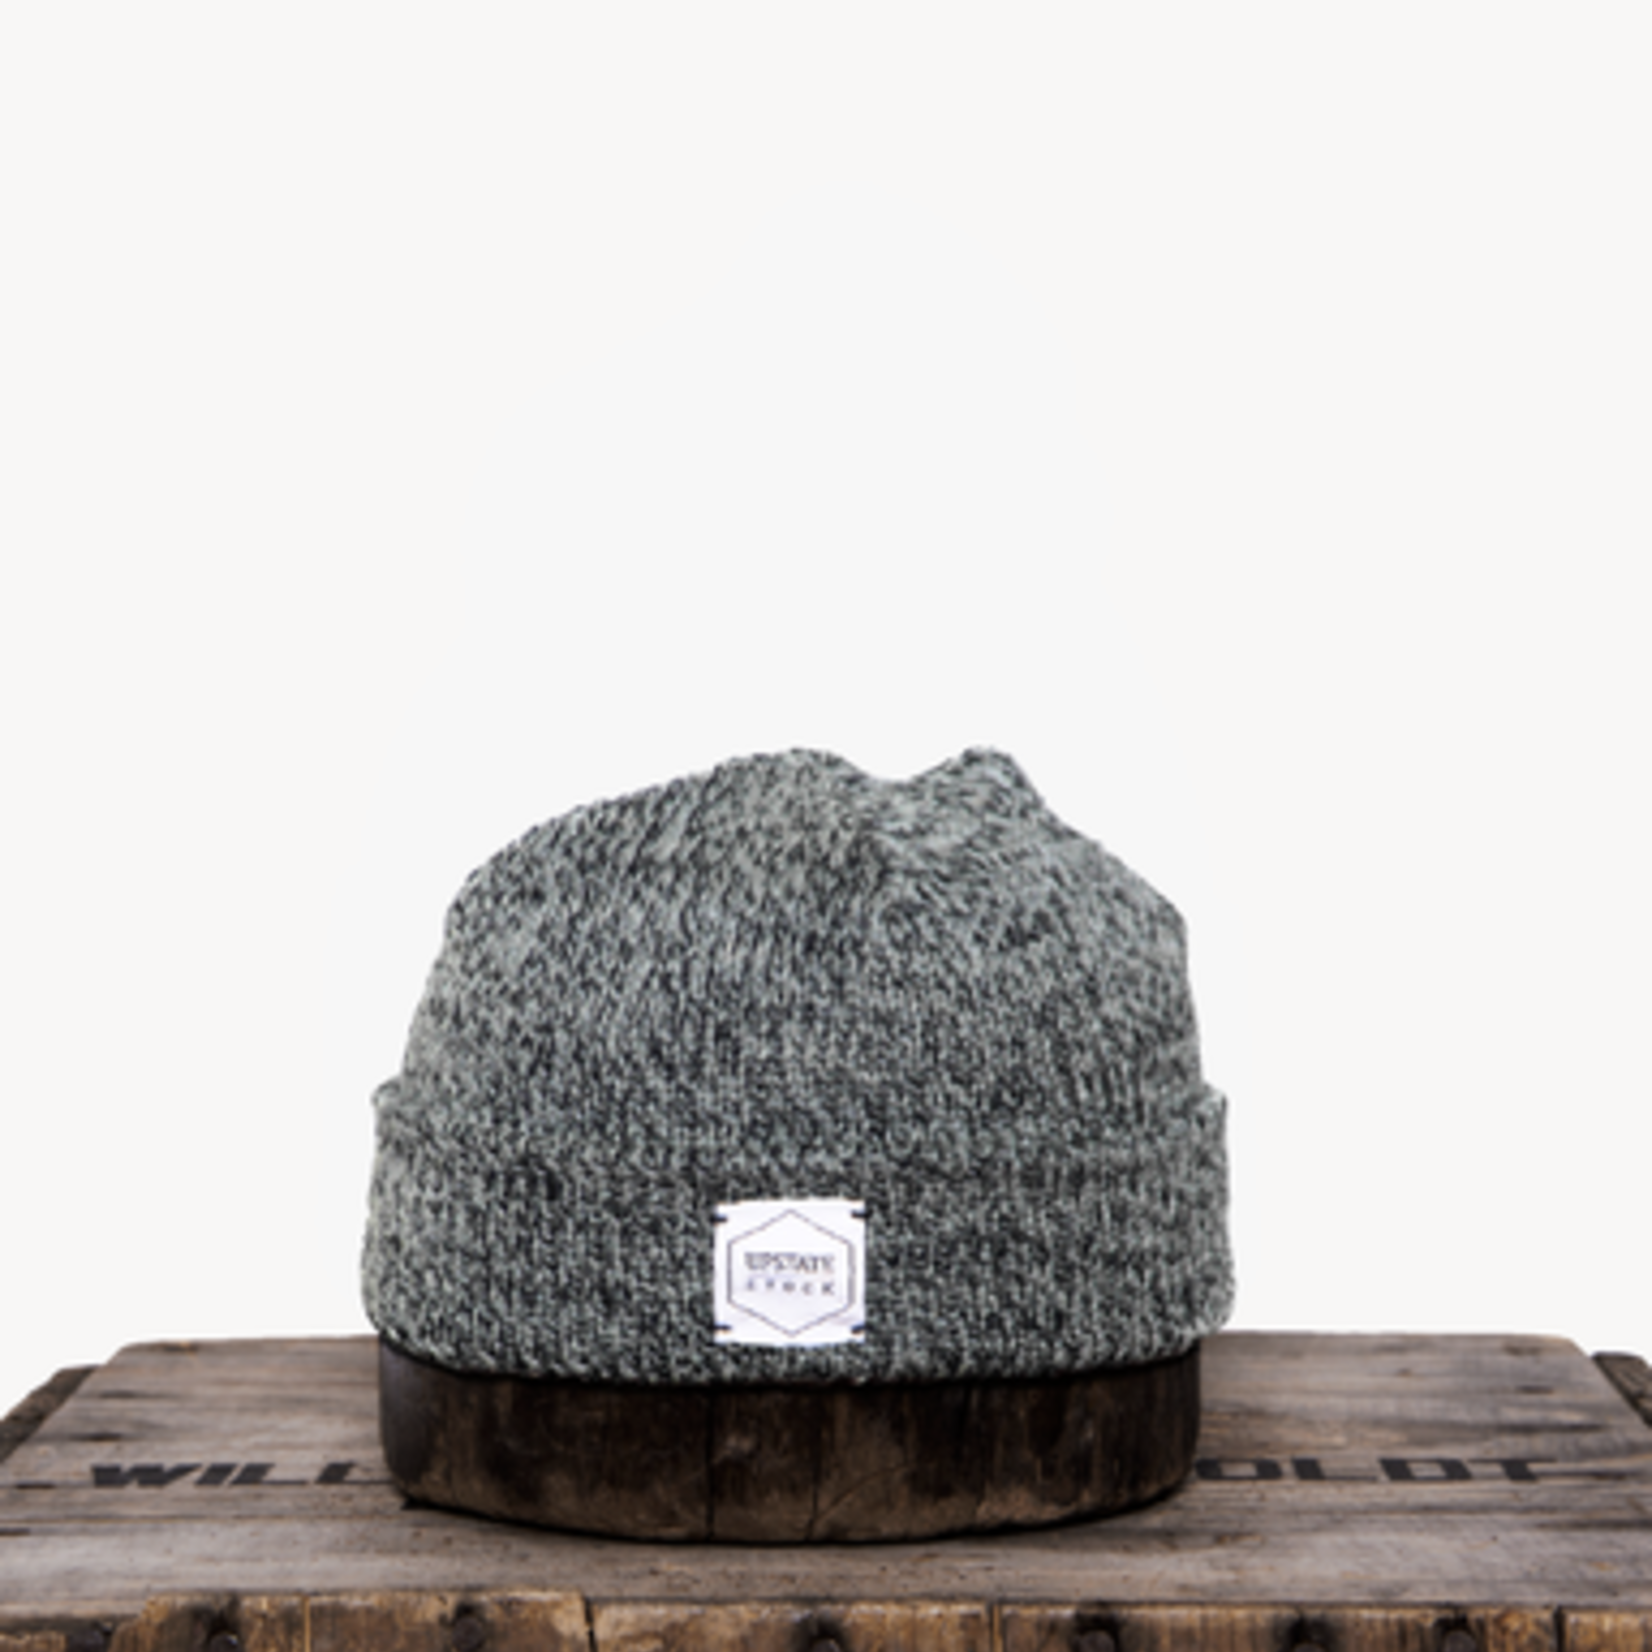 Upstate Stock Upstate Stock Charcoal Melange Wool Beanie